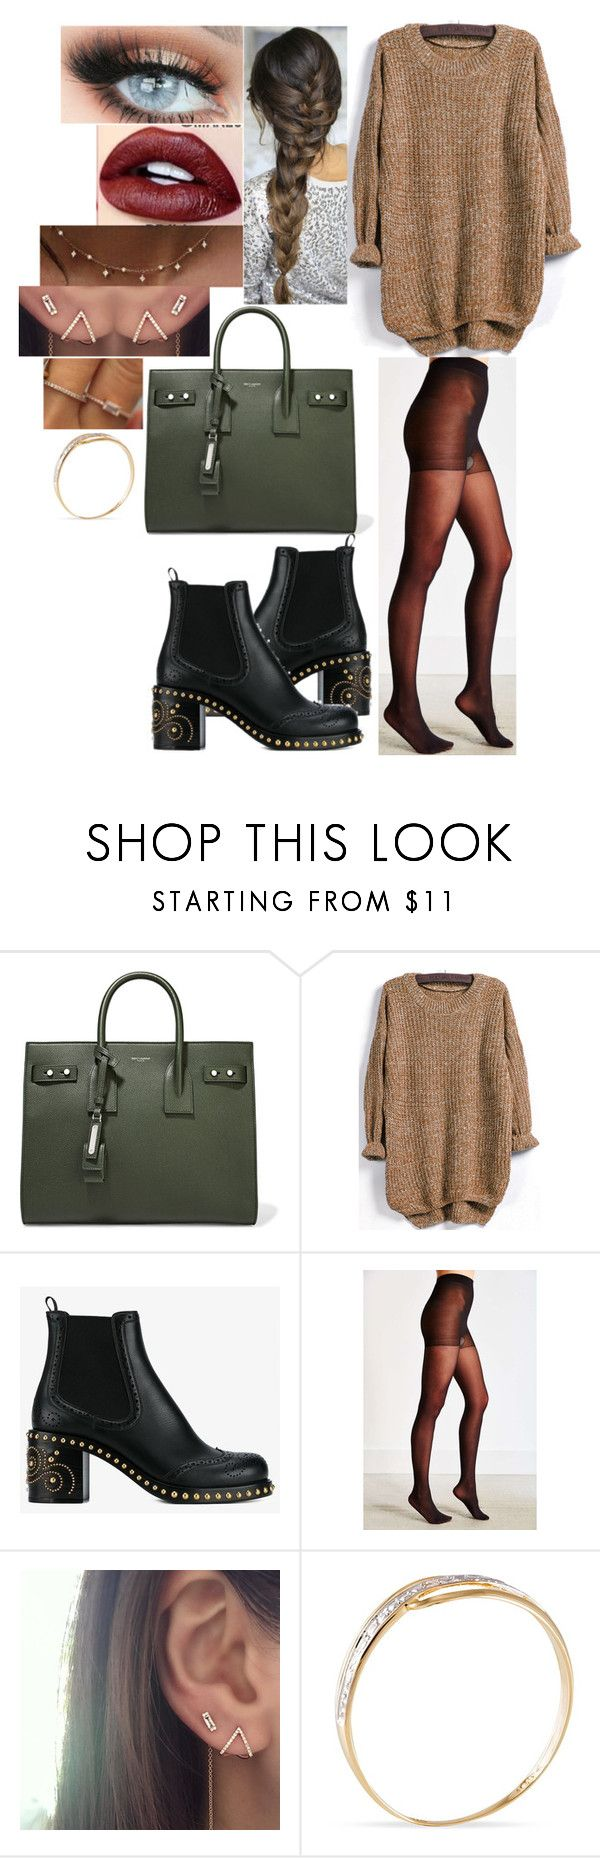 """""""Sans titre #3150"""" by styles-of-outfits ❤ liked on Polyvore featuring Yves Saint Laurent, Miu Miu and ColourPop"""